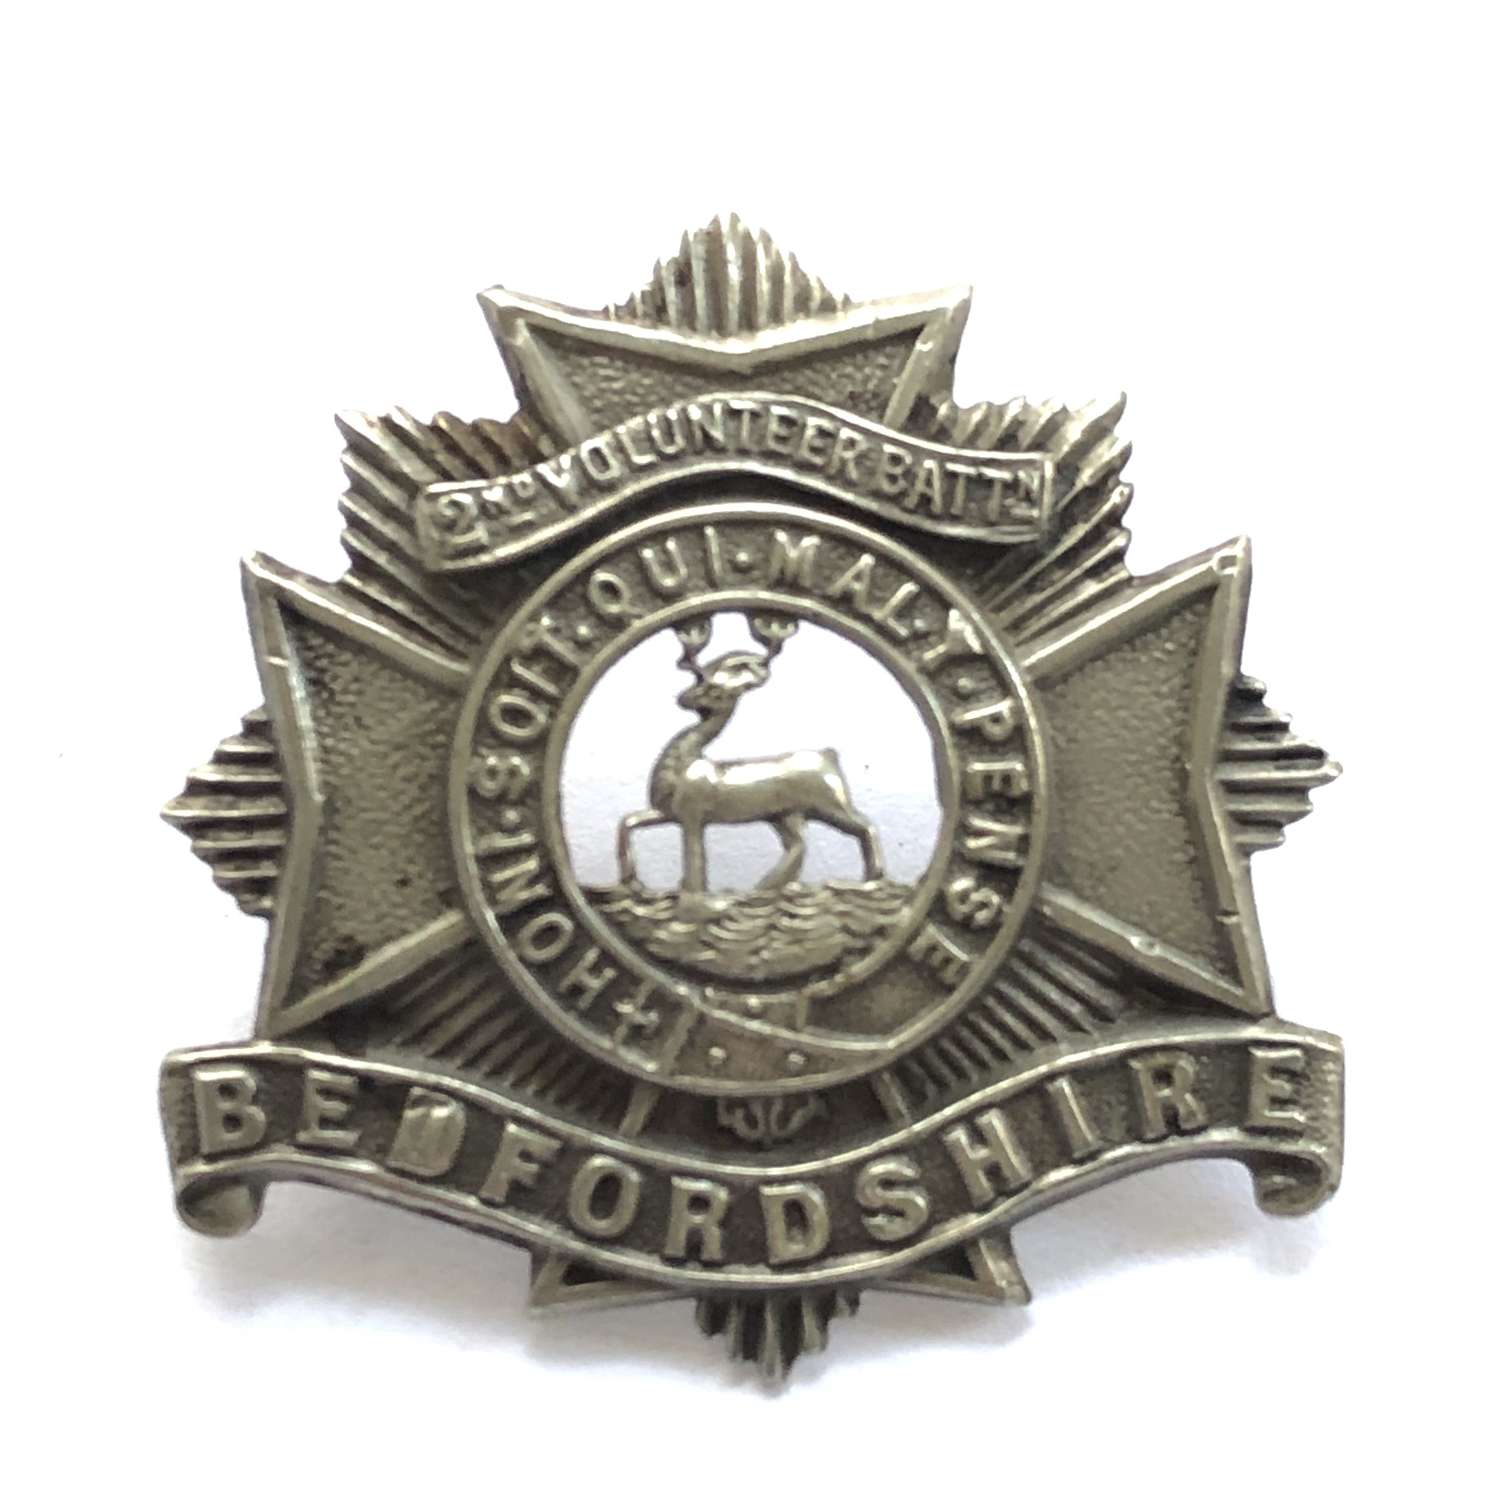 2nd (Hemel Helpstead) VB Bedfordshire Regiment pre 1908 cap badge